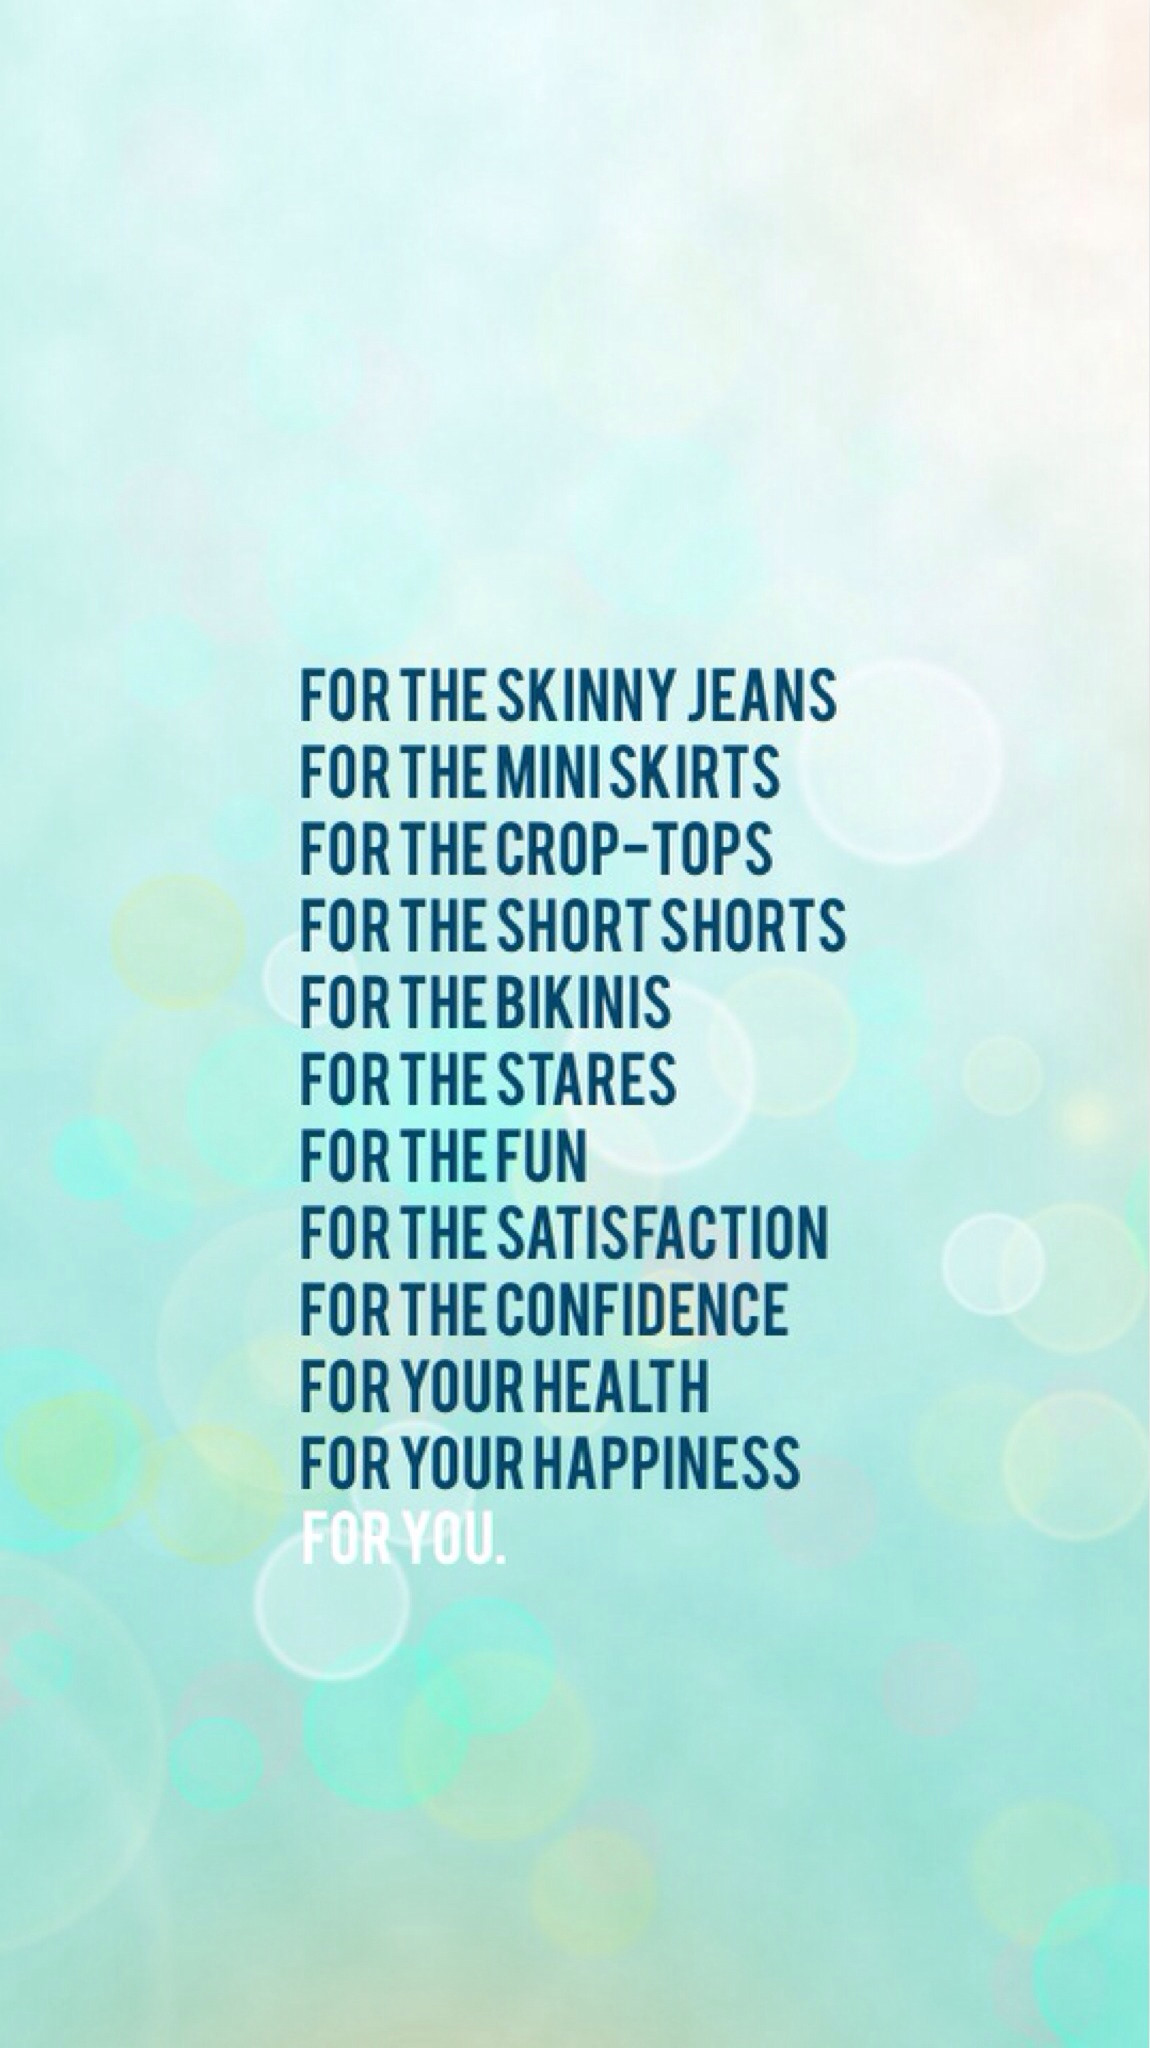 1000+ images about Fitness☀ on Pinterest   Easy morning workout, Jumping  jacks and Fitness motivation wallpaper